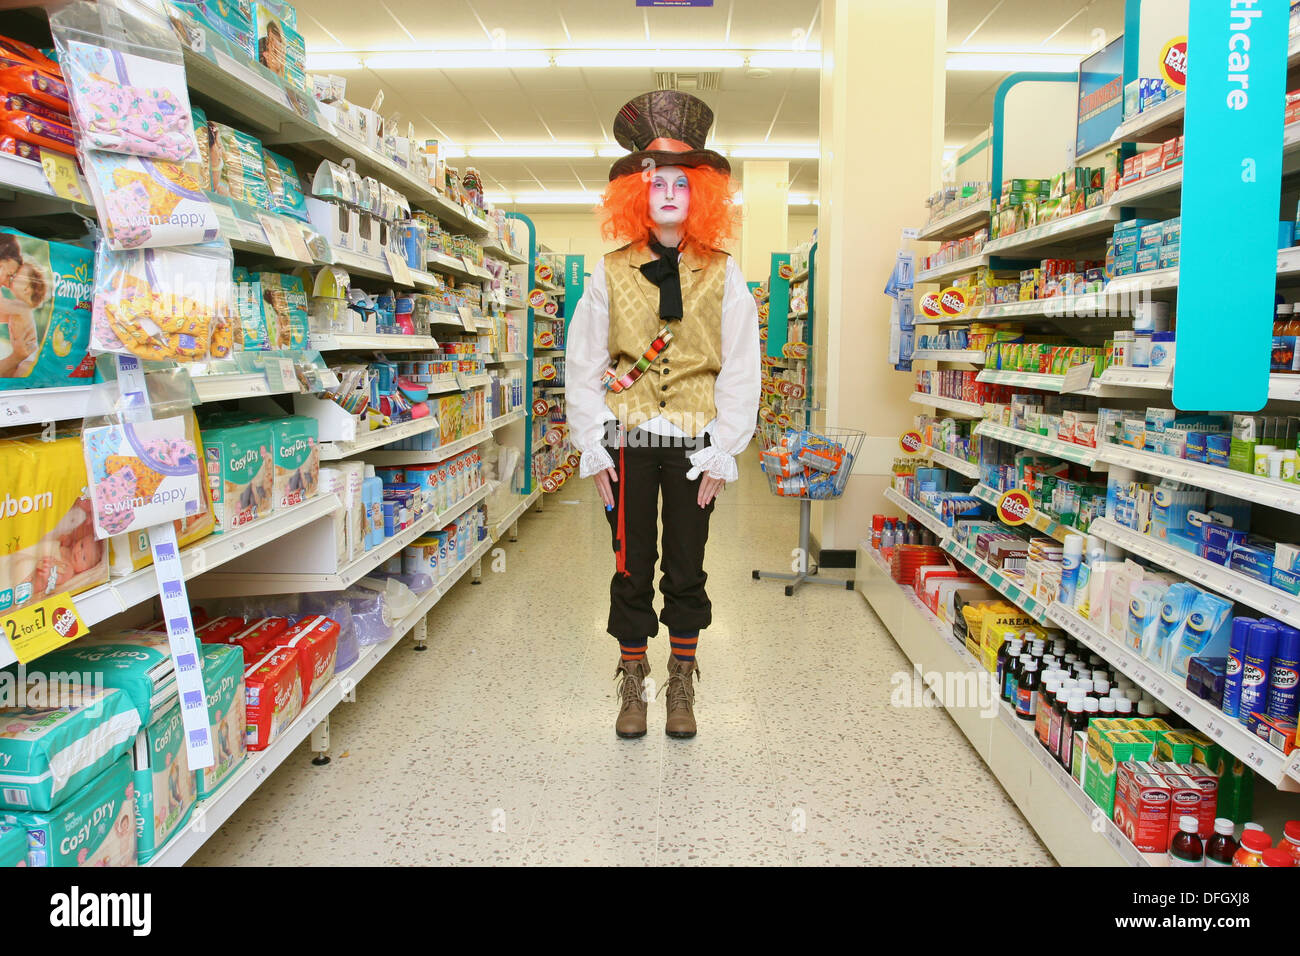 Supermarket attendant dressed in Halloween fancydress costume as 'The Hatter' from Alice's Adventures in Wonderland. UK - Stock Image